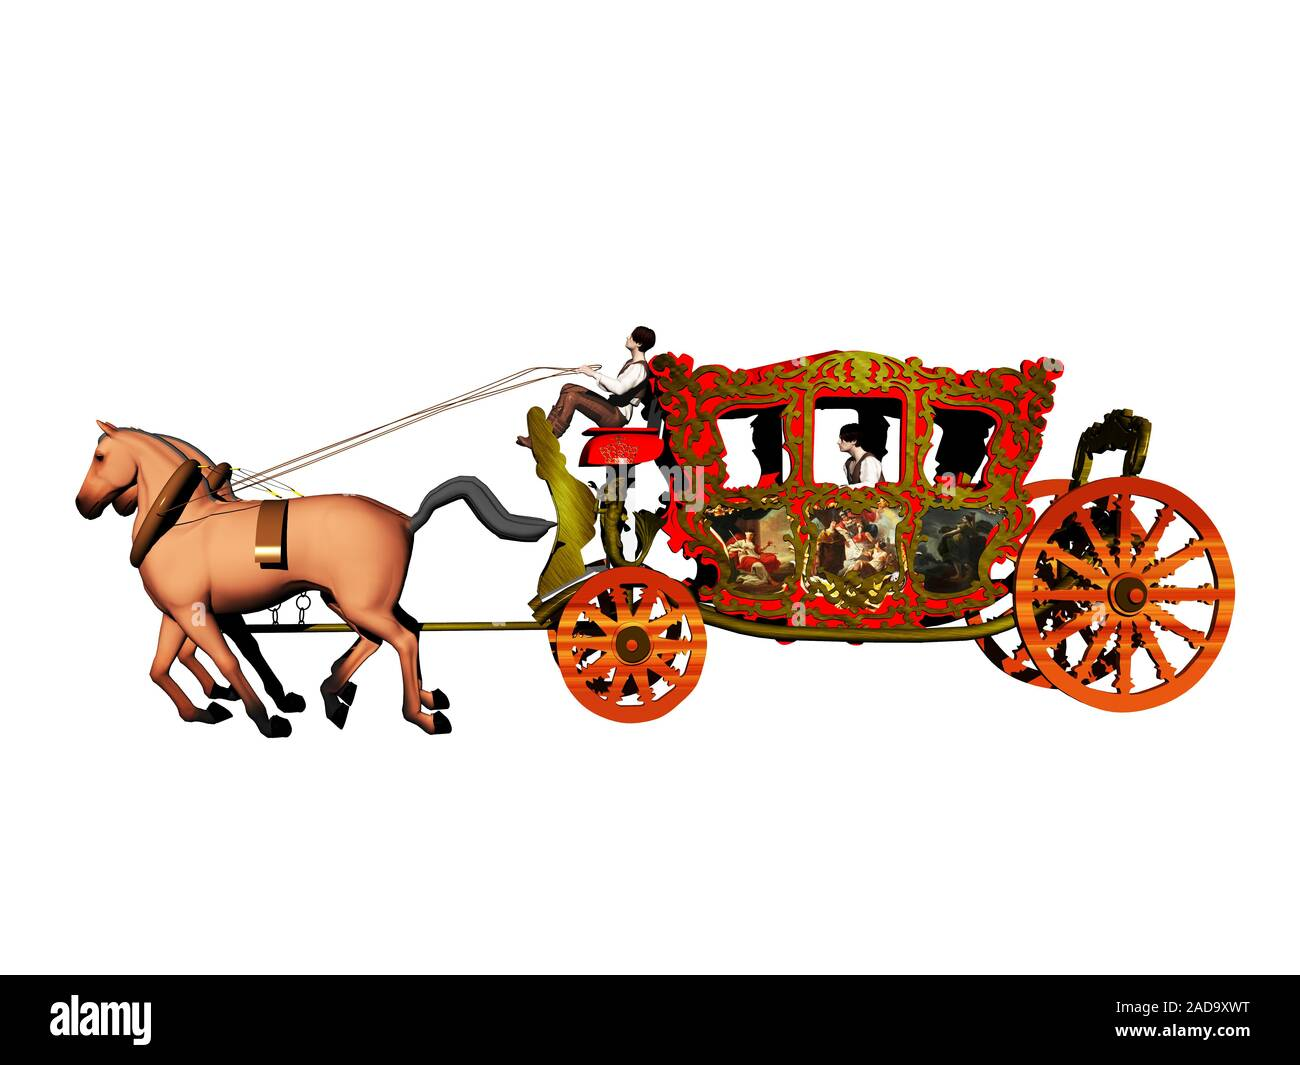 royal carriage with draft horses Stock Photo